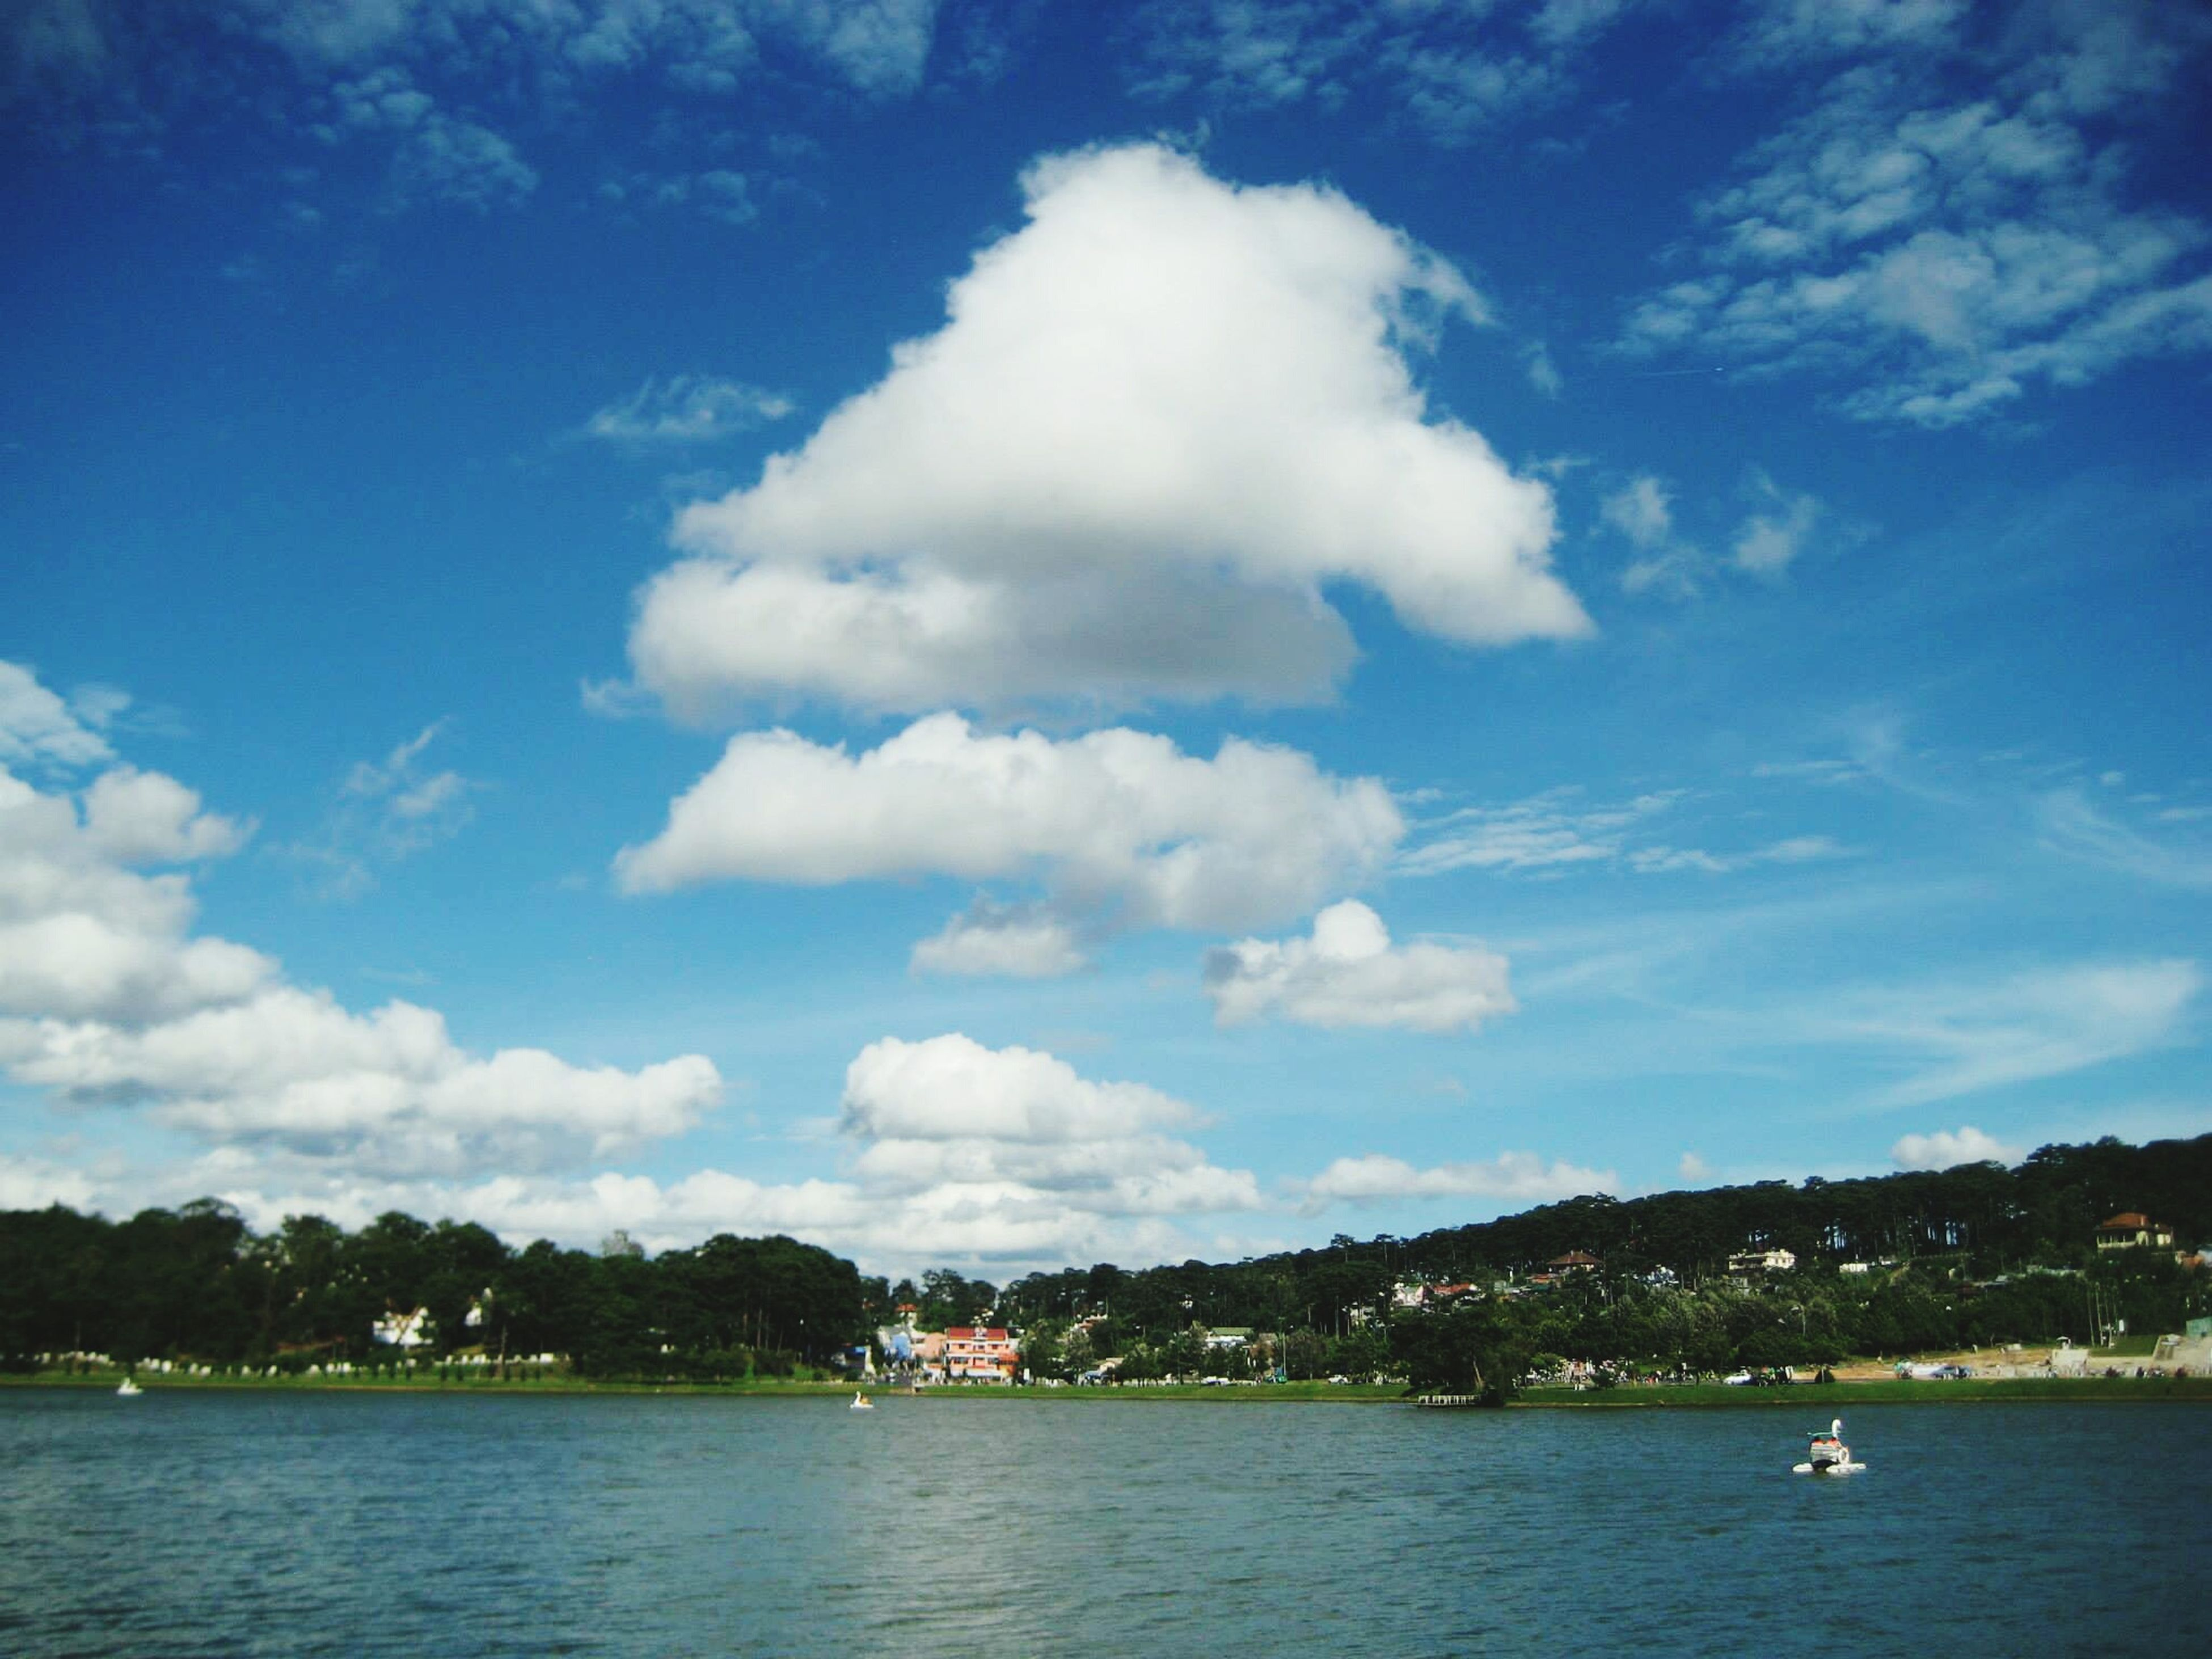 water, waterfront, nautical vessel, sky, boat, transportation, tree, cloud - sky, mode of transport, sea, tranquil scene, tranquility, blue, scenics, river, cloud, lake, nature, beauty in nature, mountain